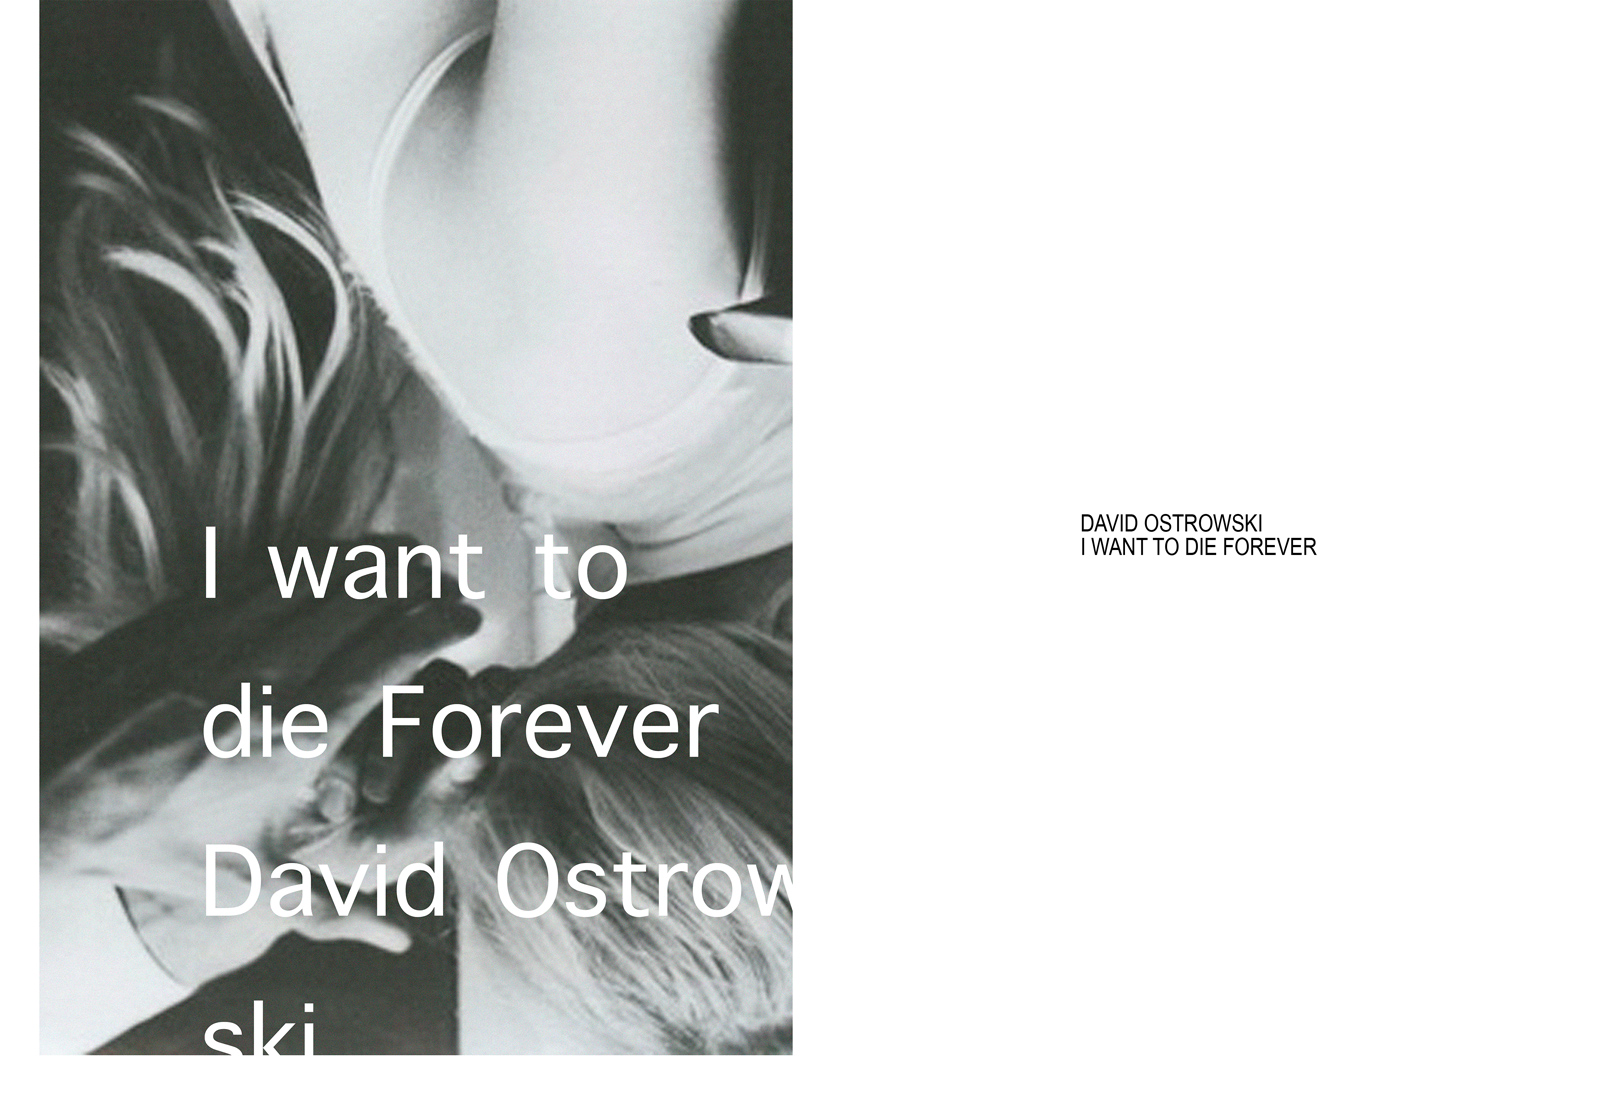 David Ostrowski, I want to die forever